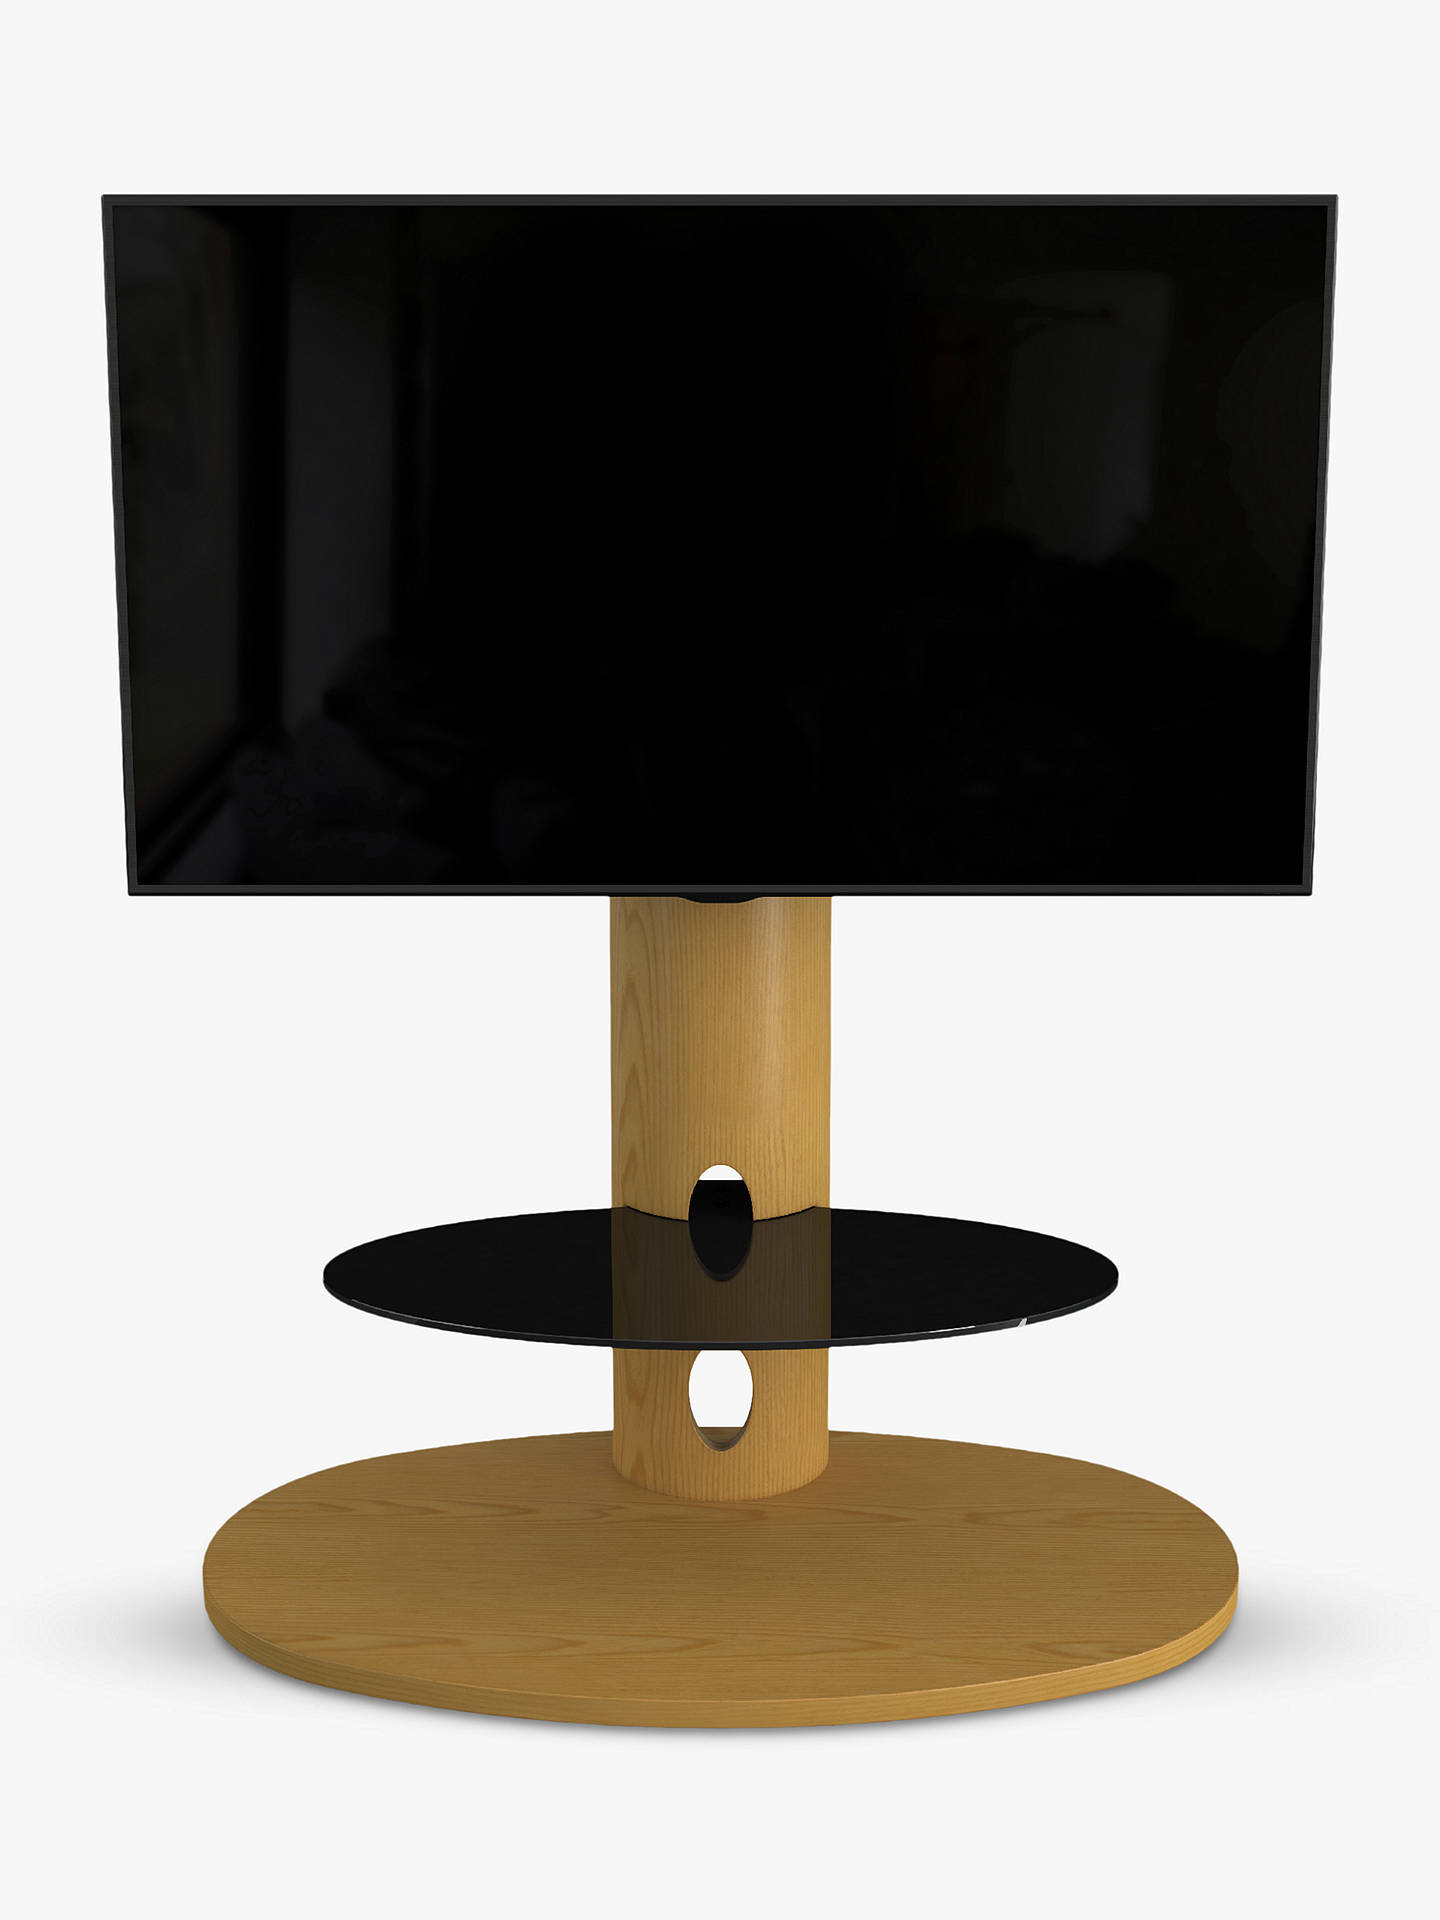 Avf Affinity Premium Chepstow 930 Tv Stand With Mount For Tvs Up To 65